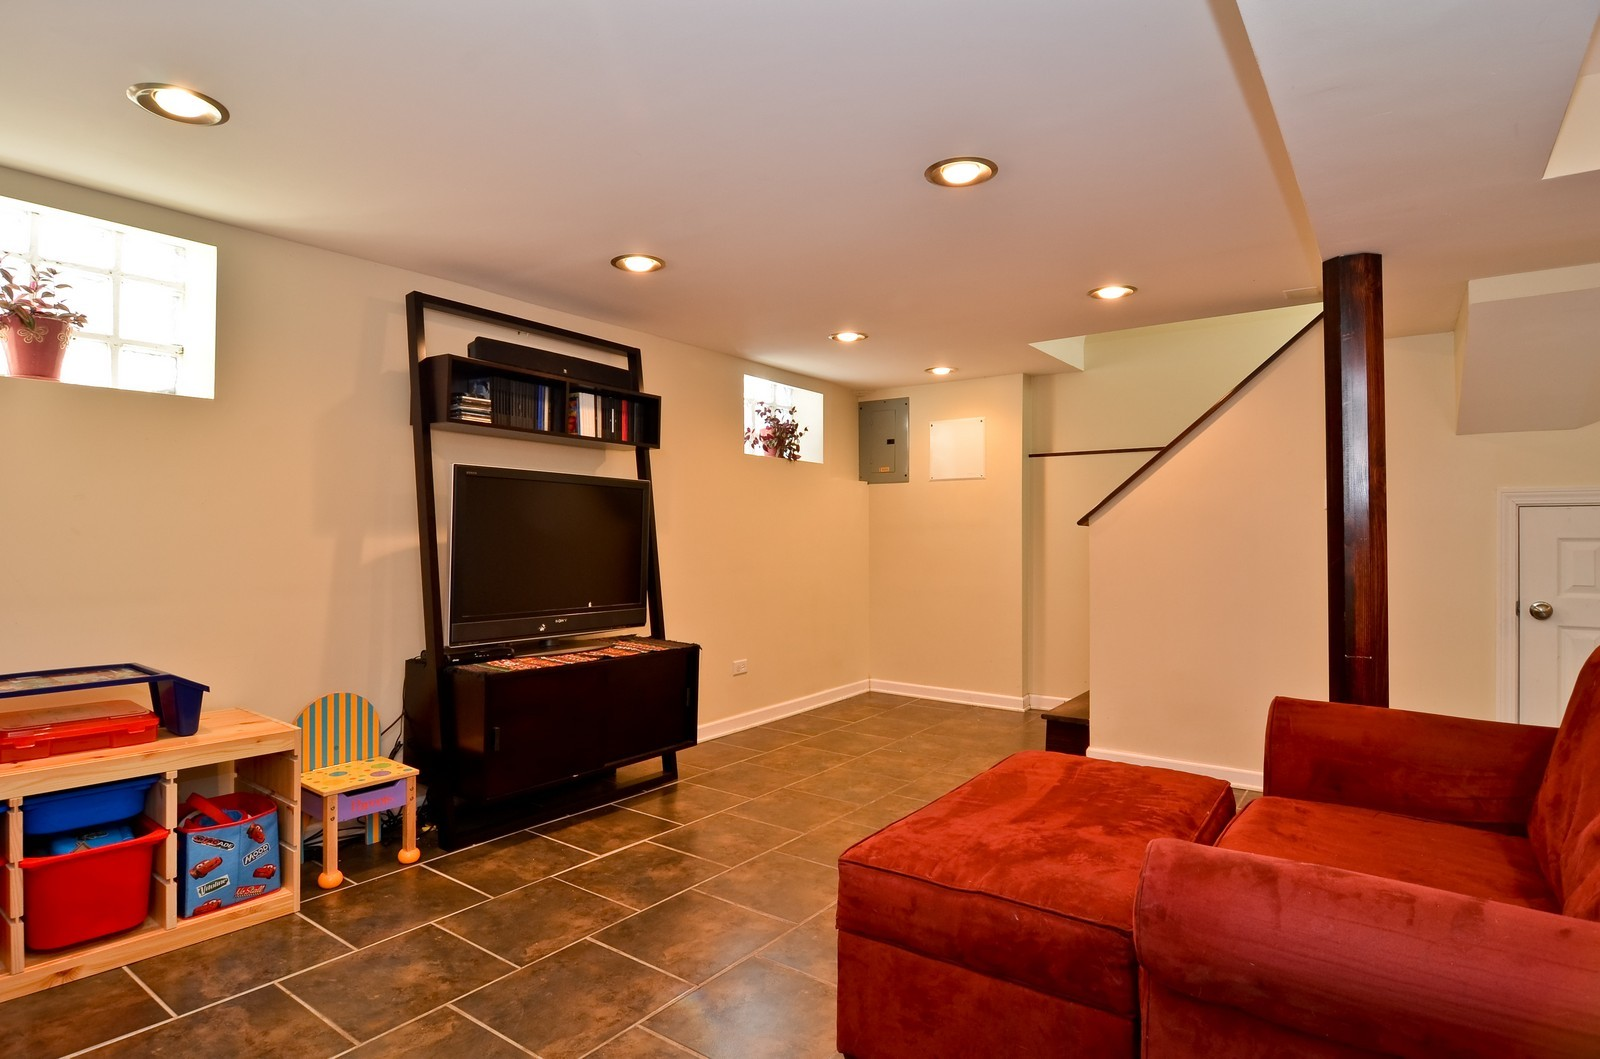 Real Estate Photography - 392 S Cumberland Parkway, Des Plaines, IL, 60016 - Location 2